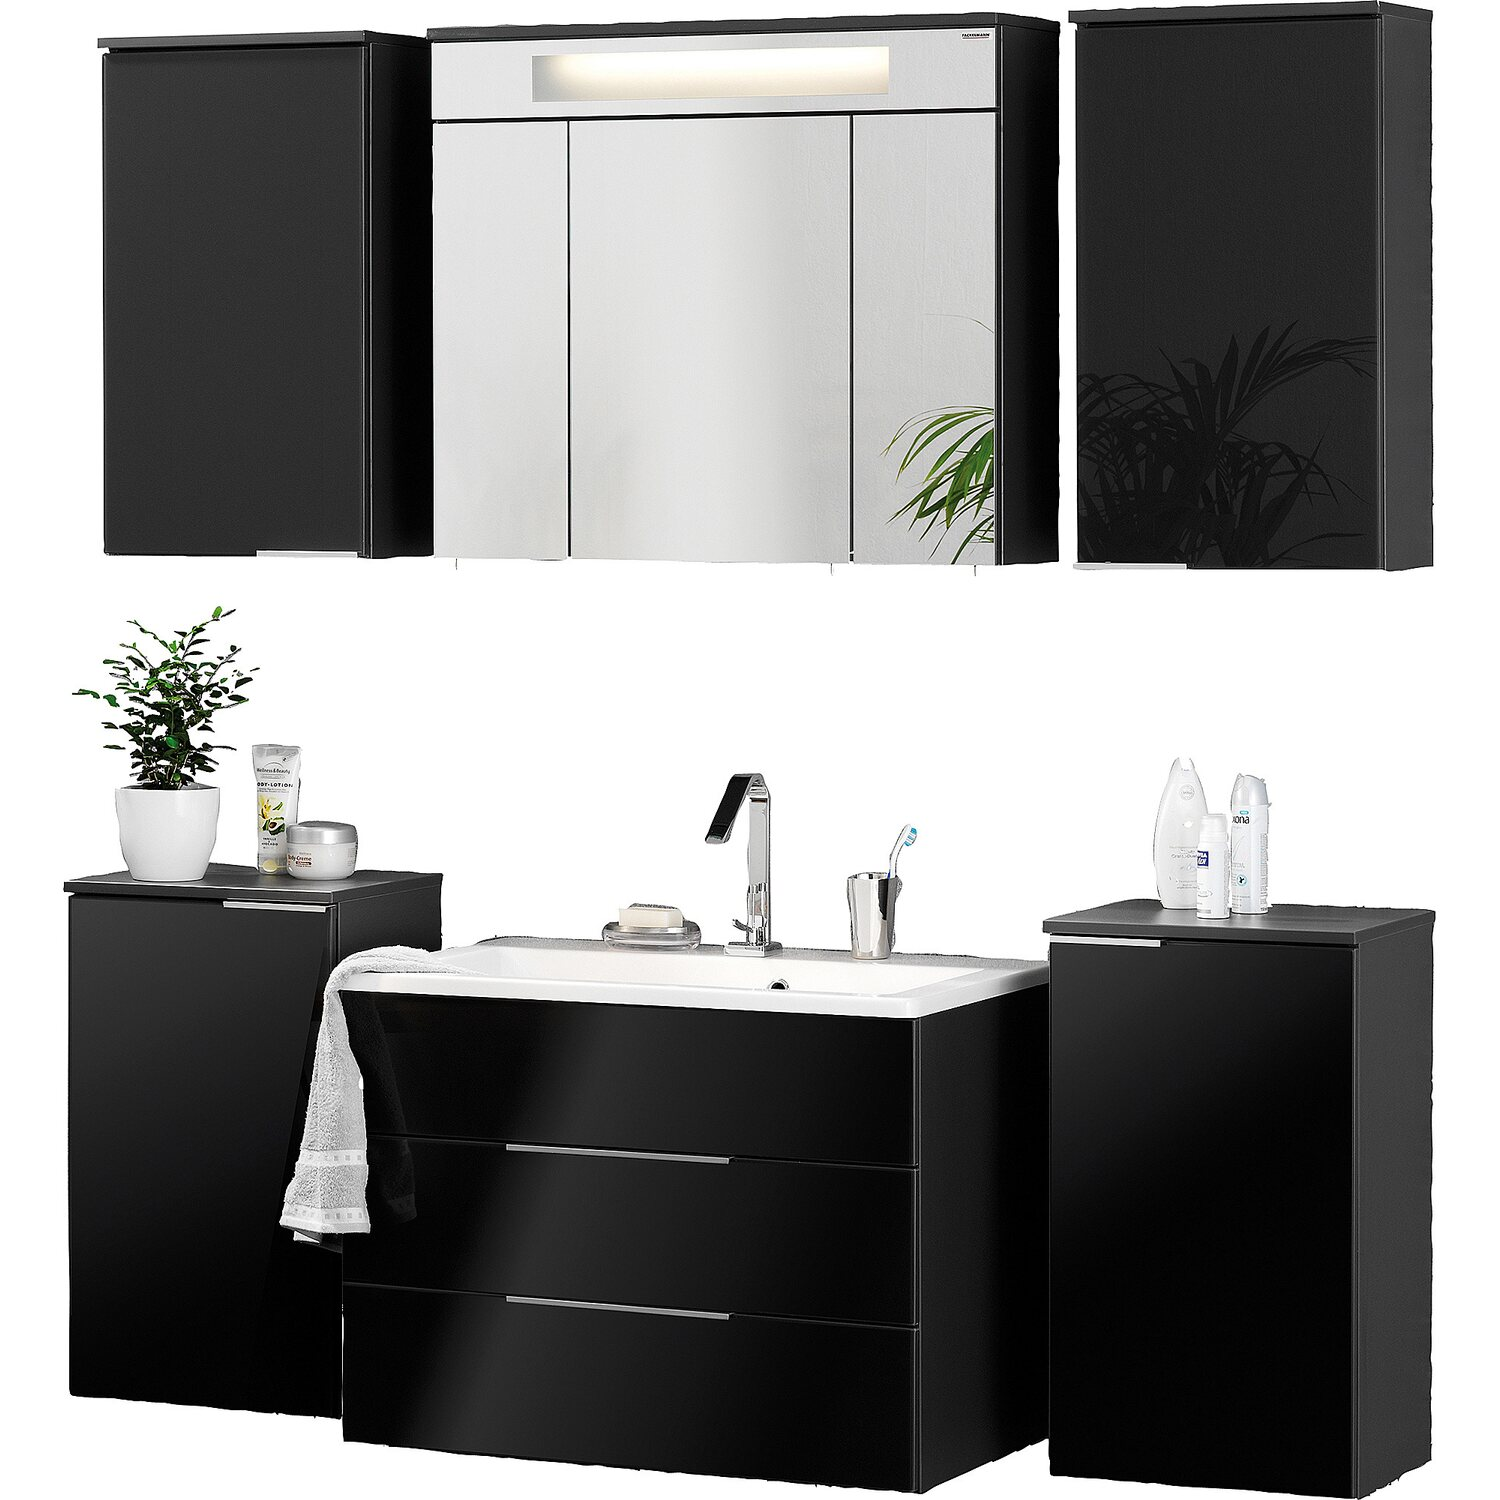 fackelmann badm bel kara set. Black Bedroom Furniture Sets. Home Design Ideas